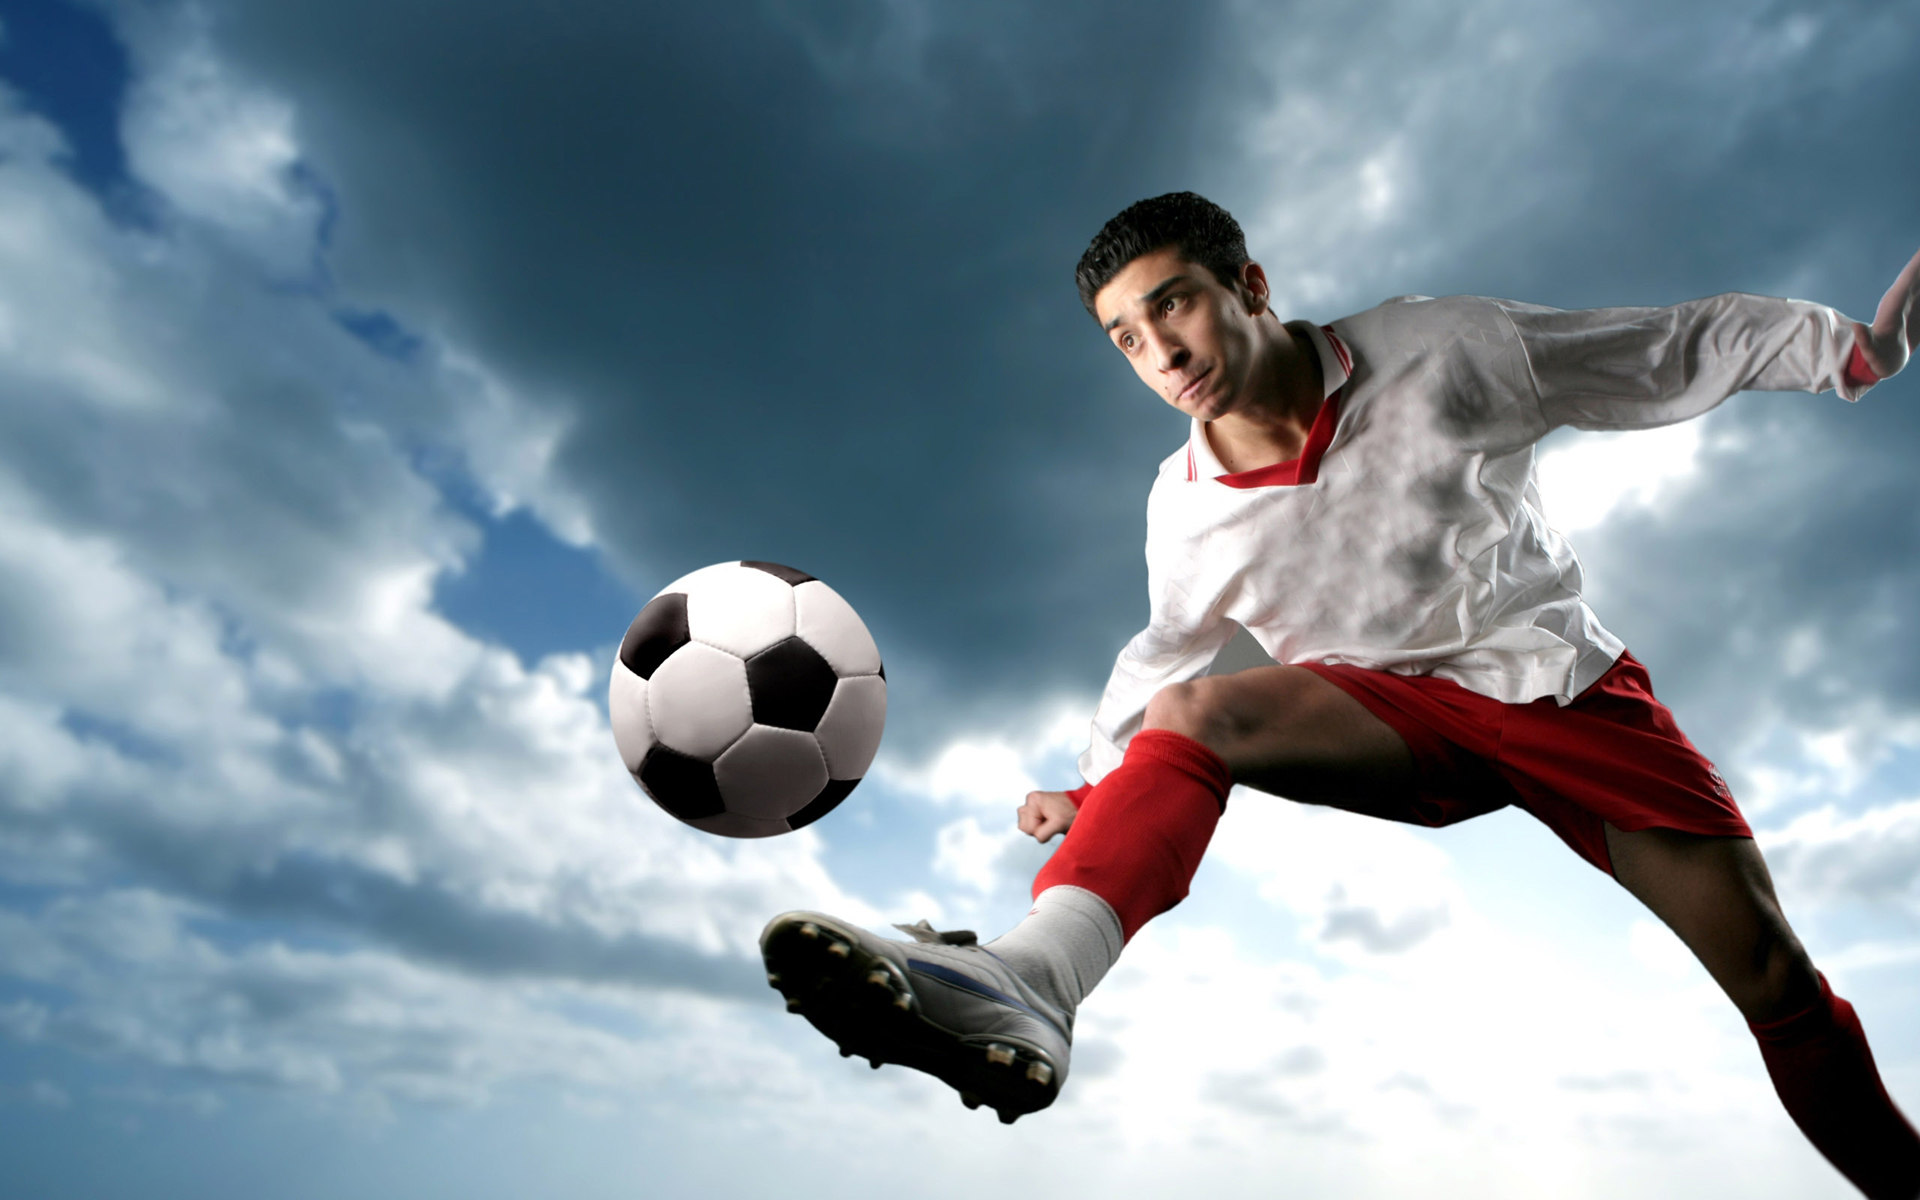 Download Football Ipad Wallpaper Gallery: Football Wallpapers High Quality